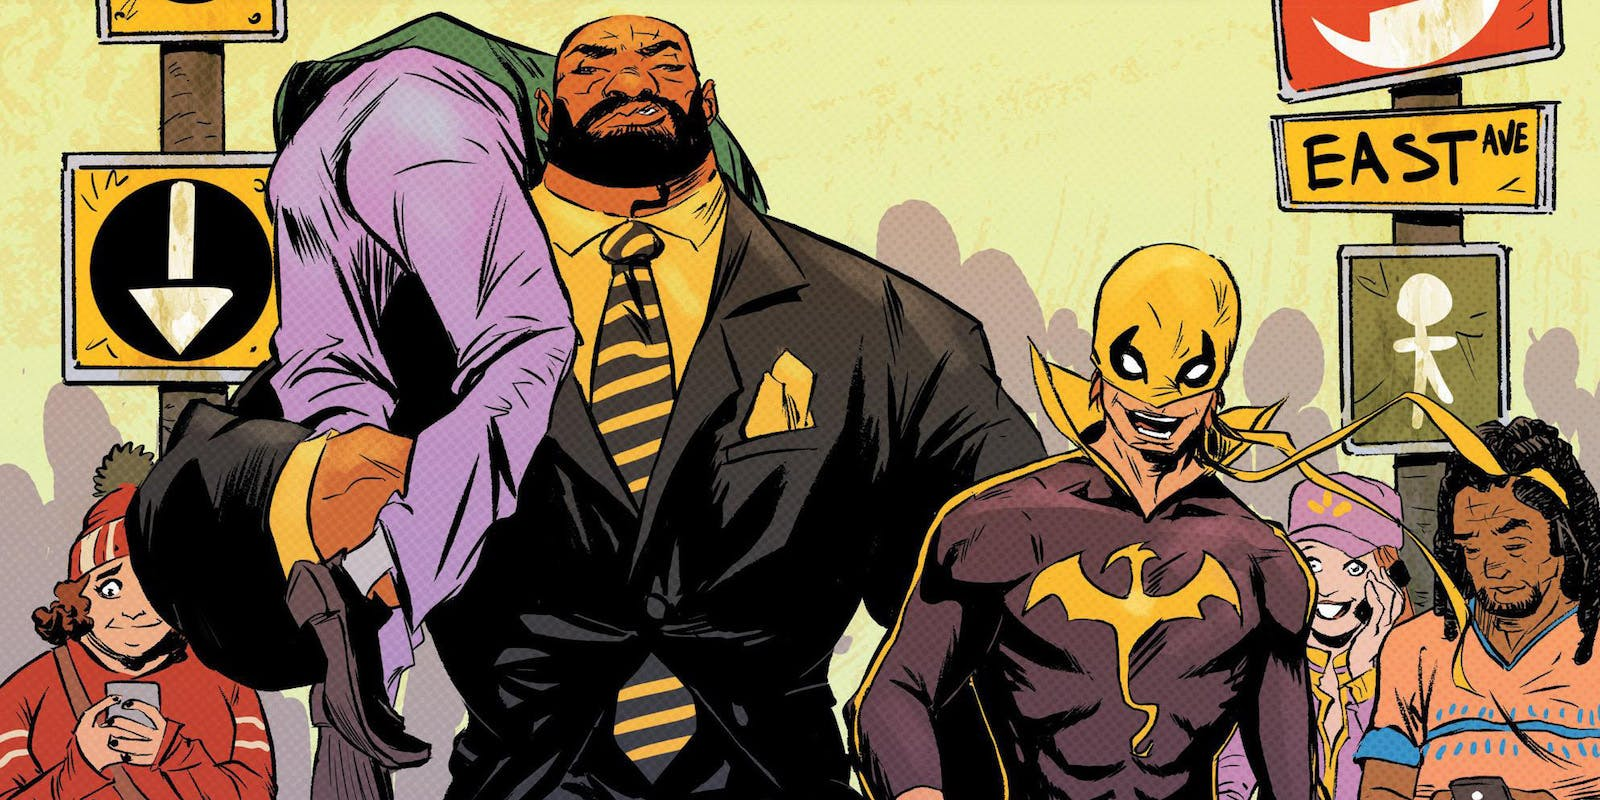 Heroes-for-Hire-Series-Luke-Cage-Iron-Fist-Comics.jpg